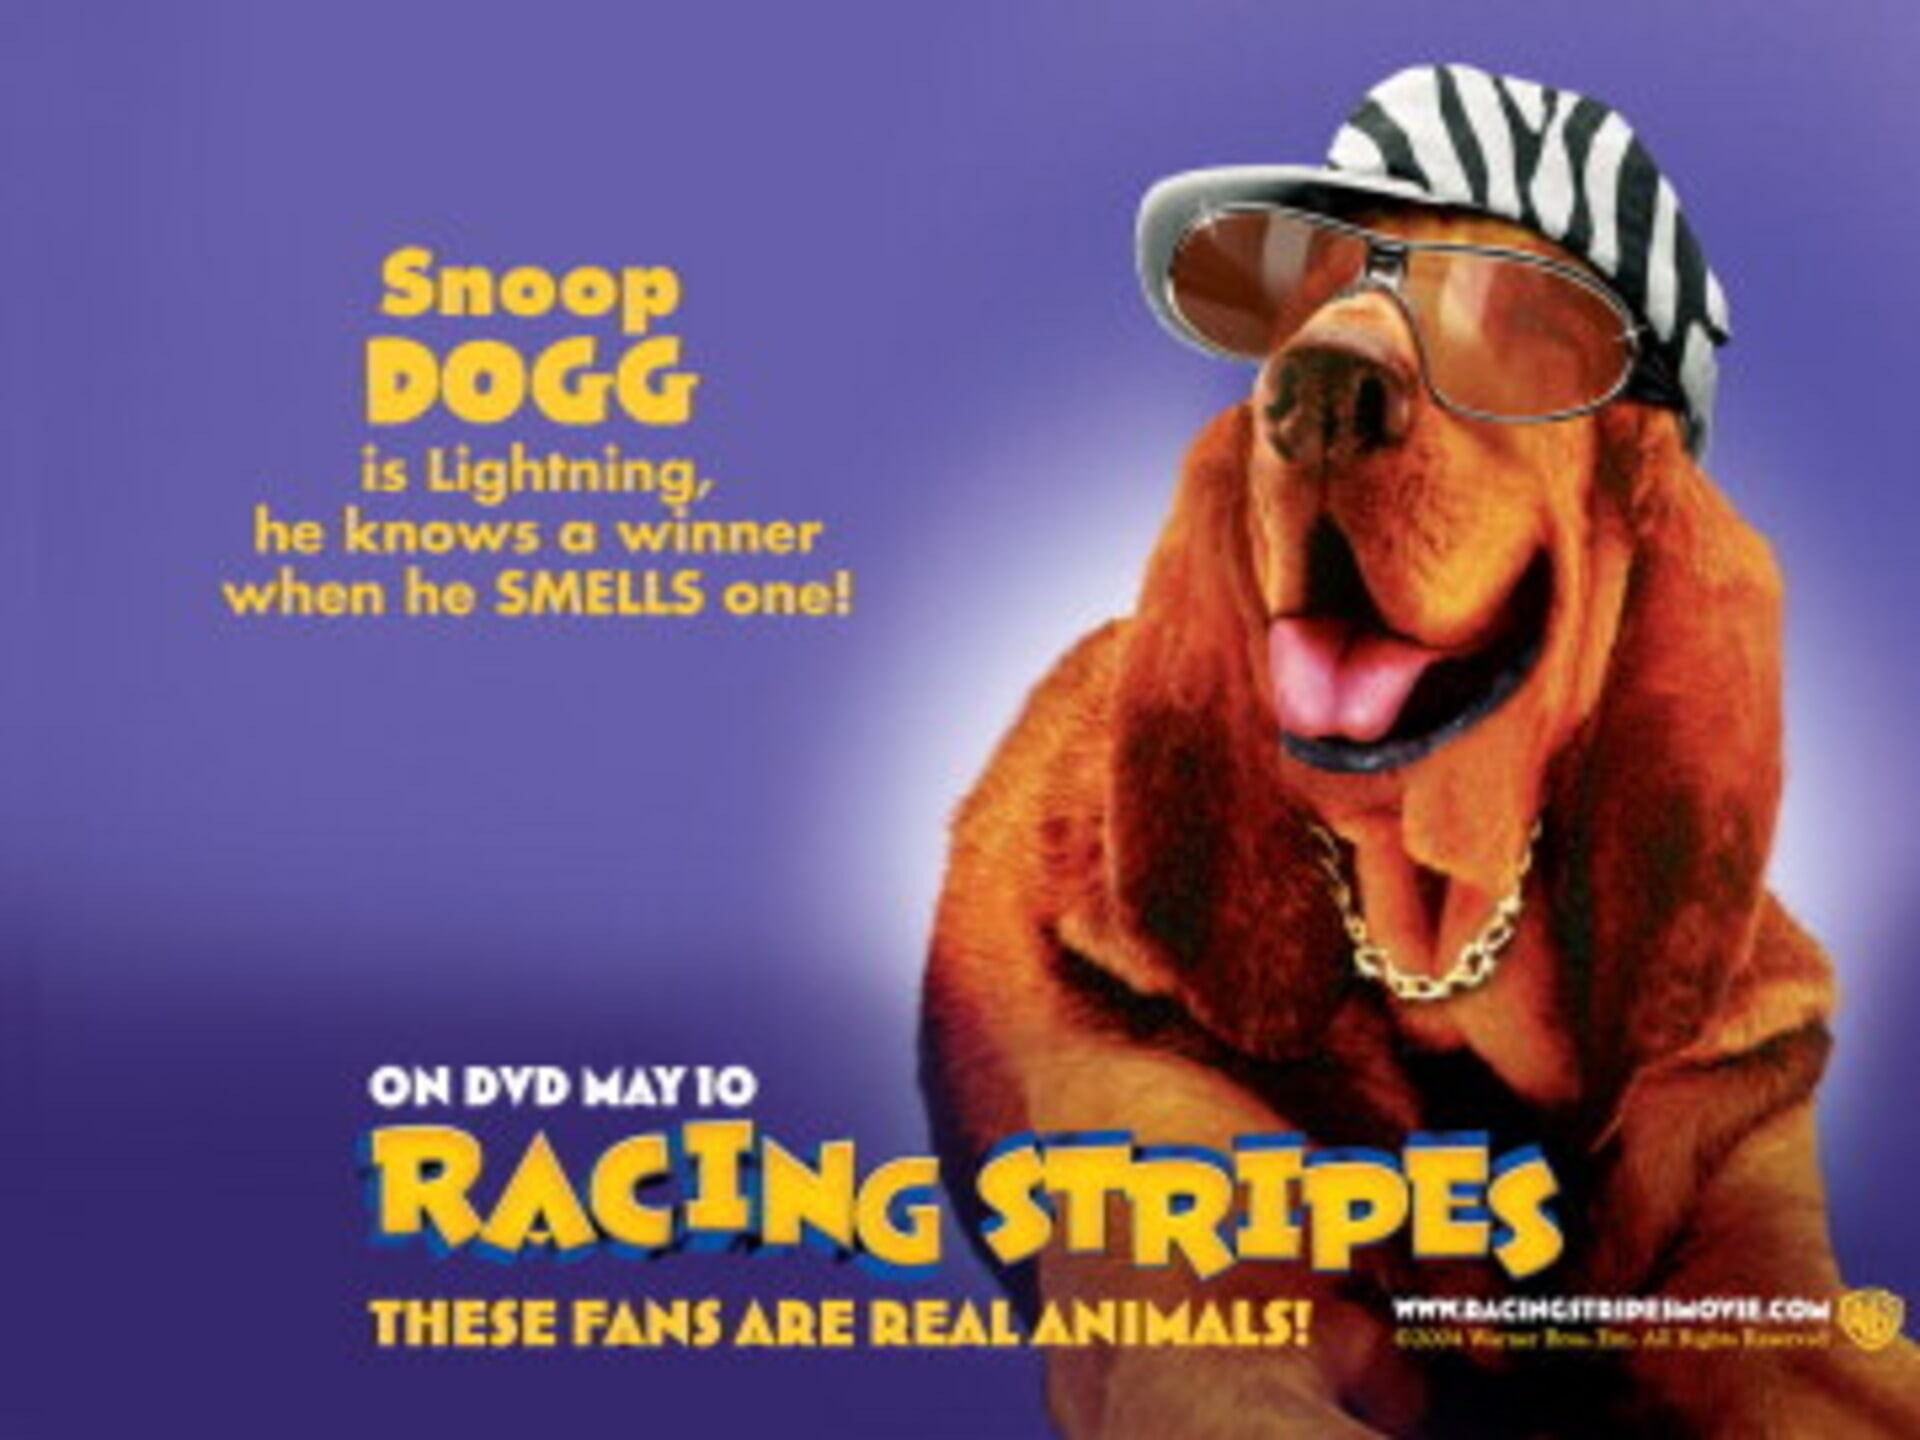 Racing Stripes - Image 29